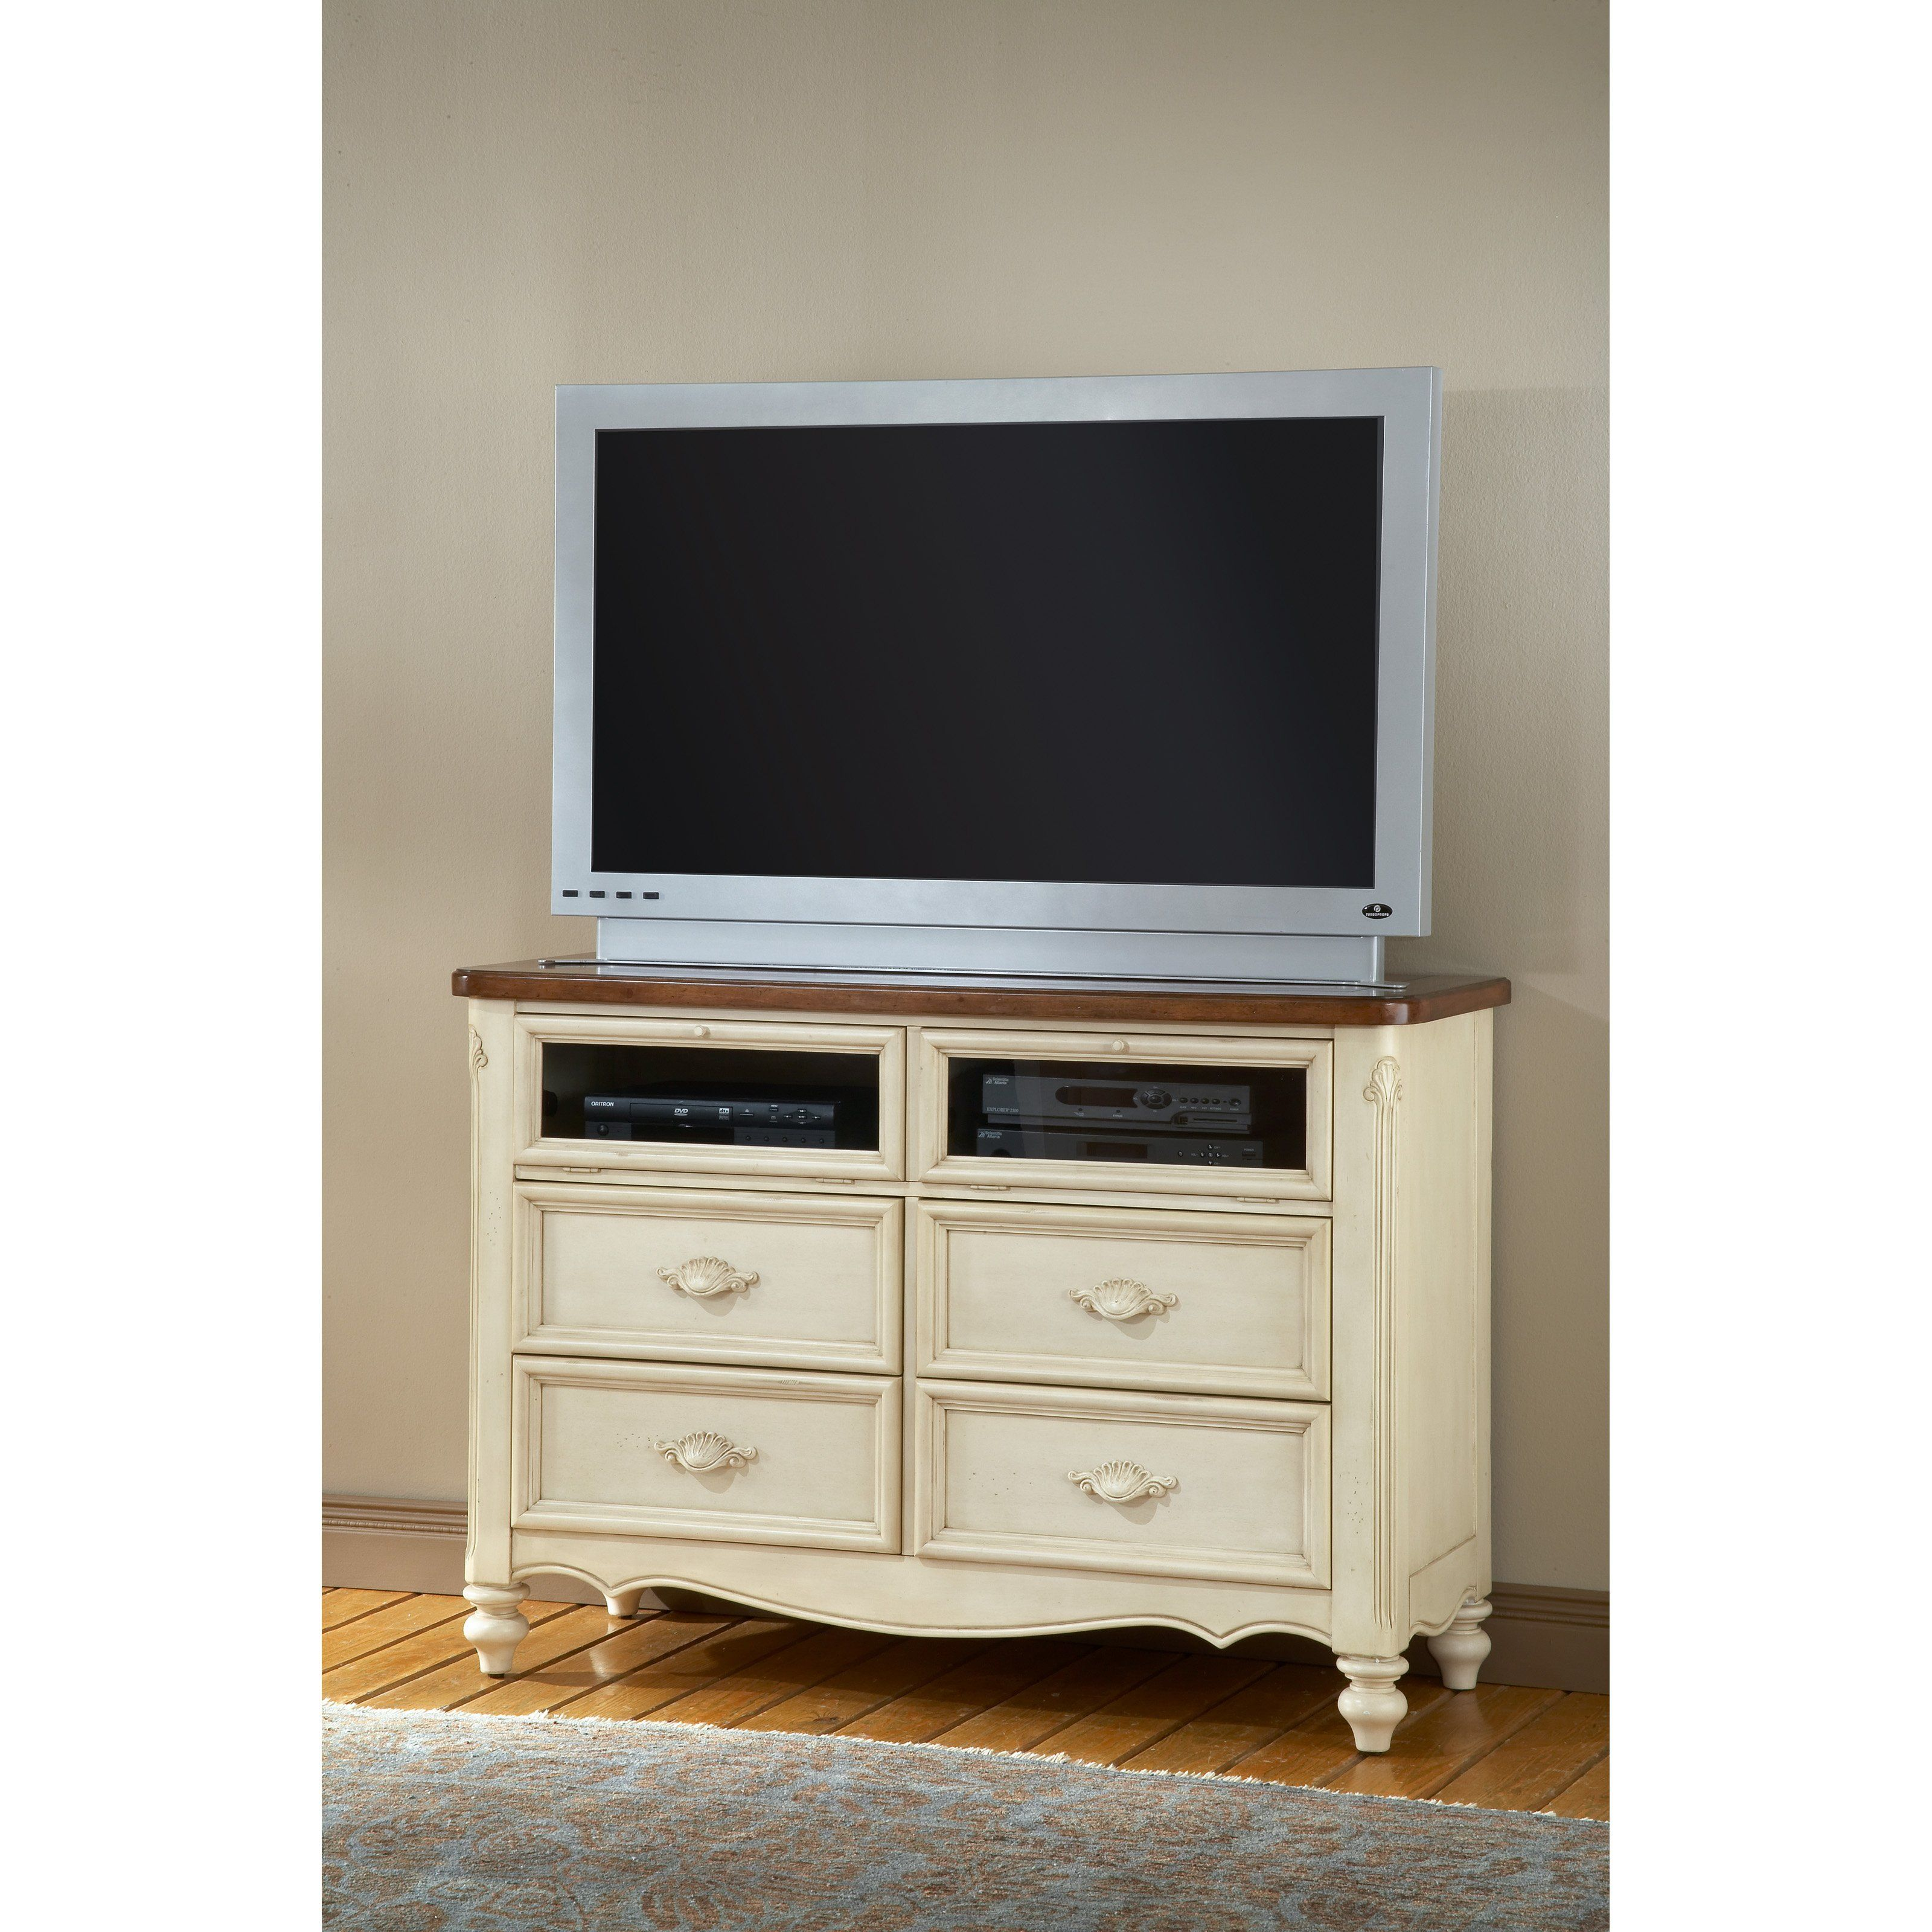 Chateau drawer media chest home ideas pinterest drawers